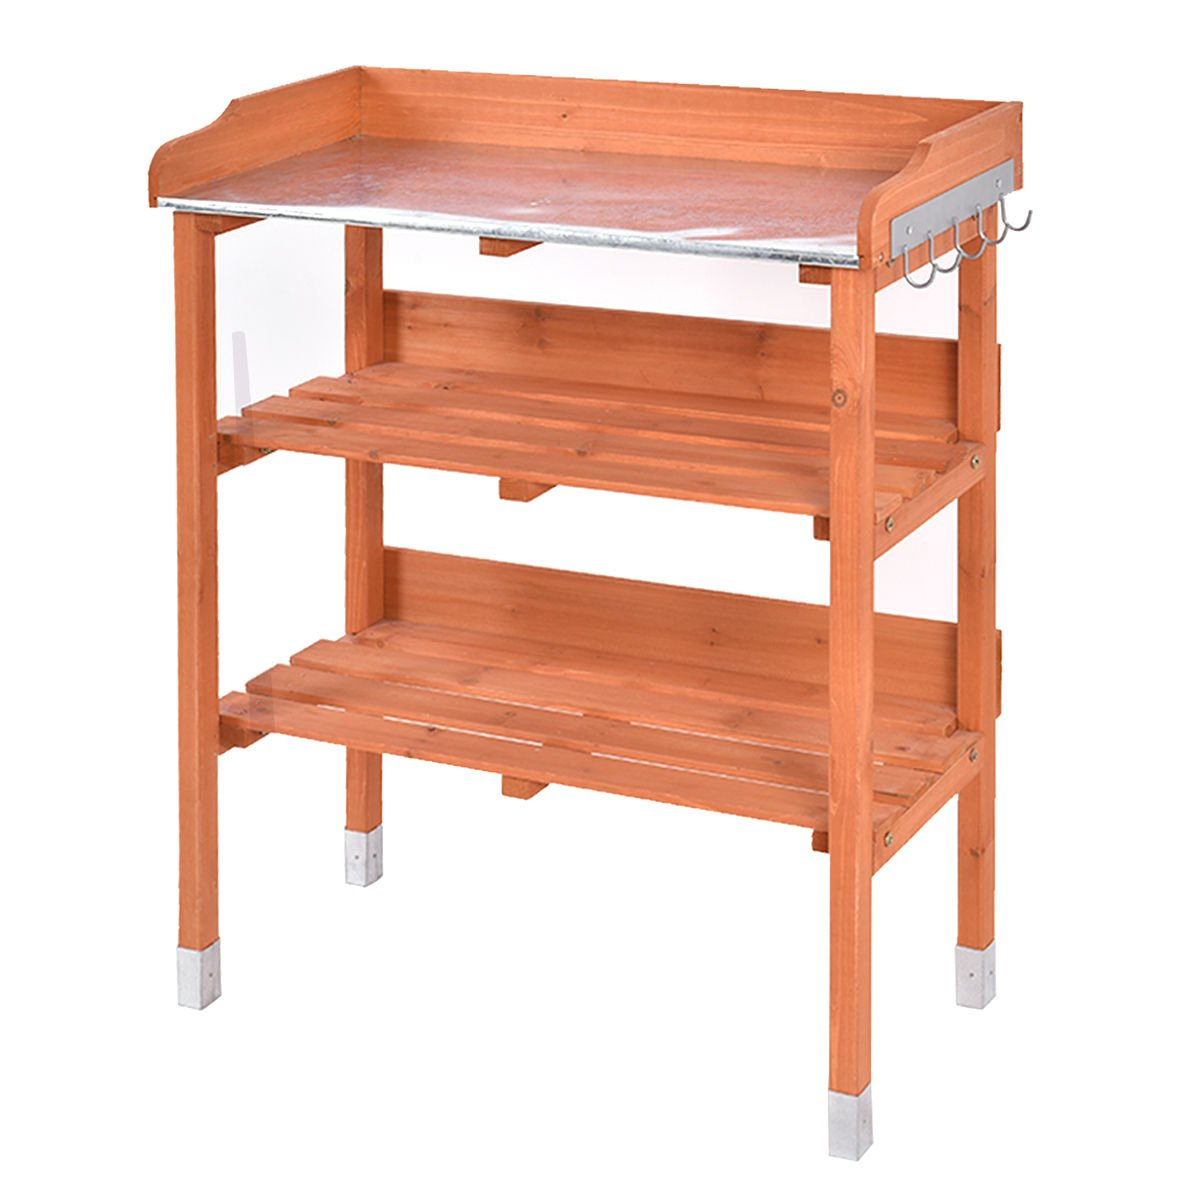 Garden Wooden Potting Bench Tool Storage Shelf W/Hook Table by Allblessings